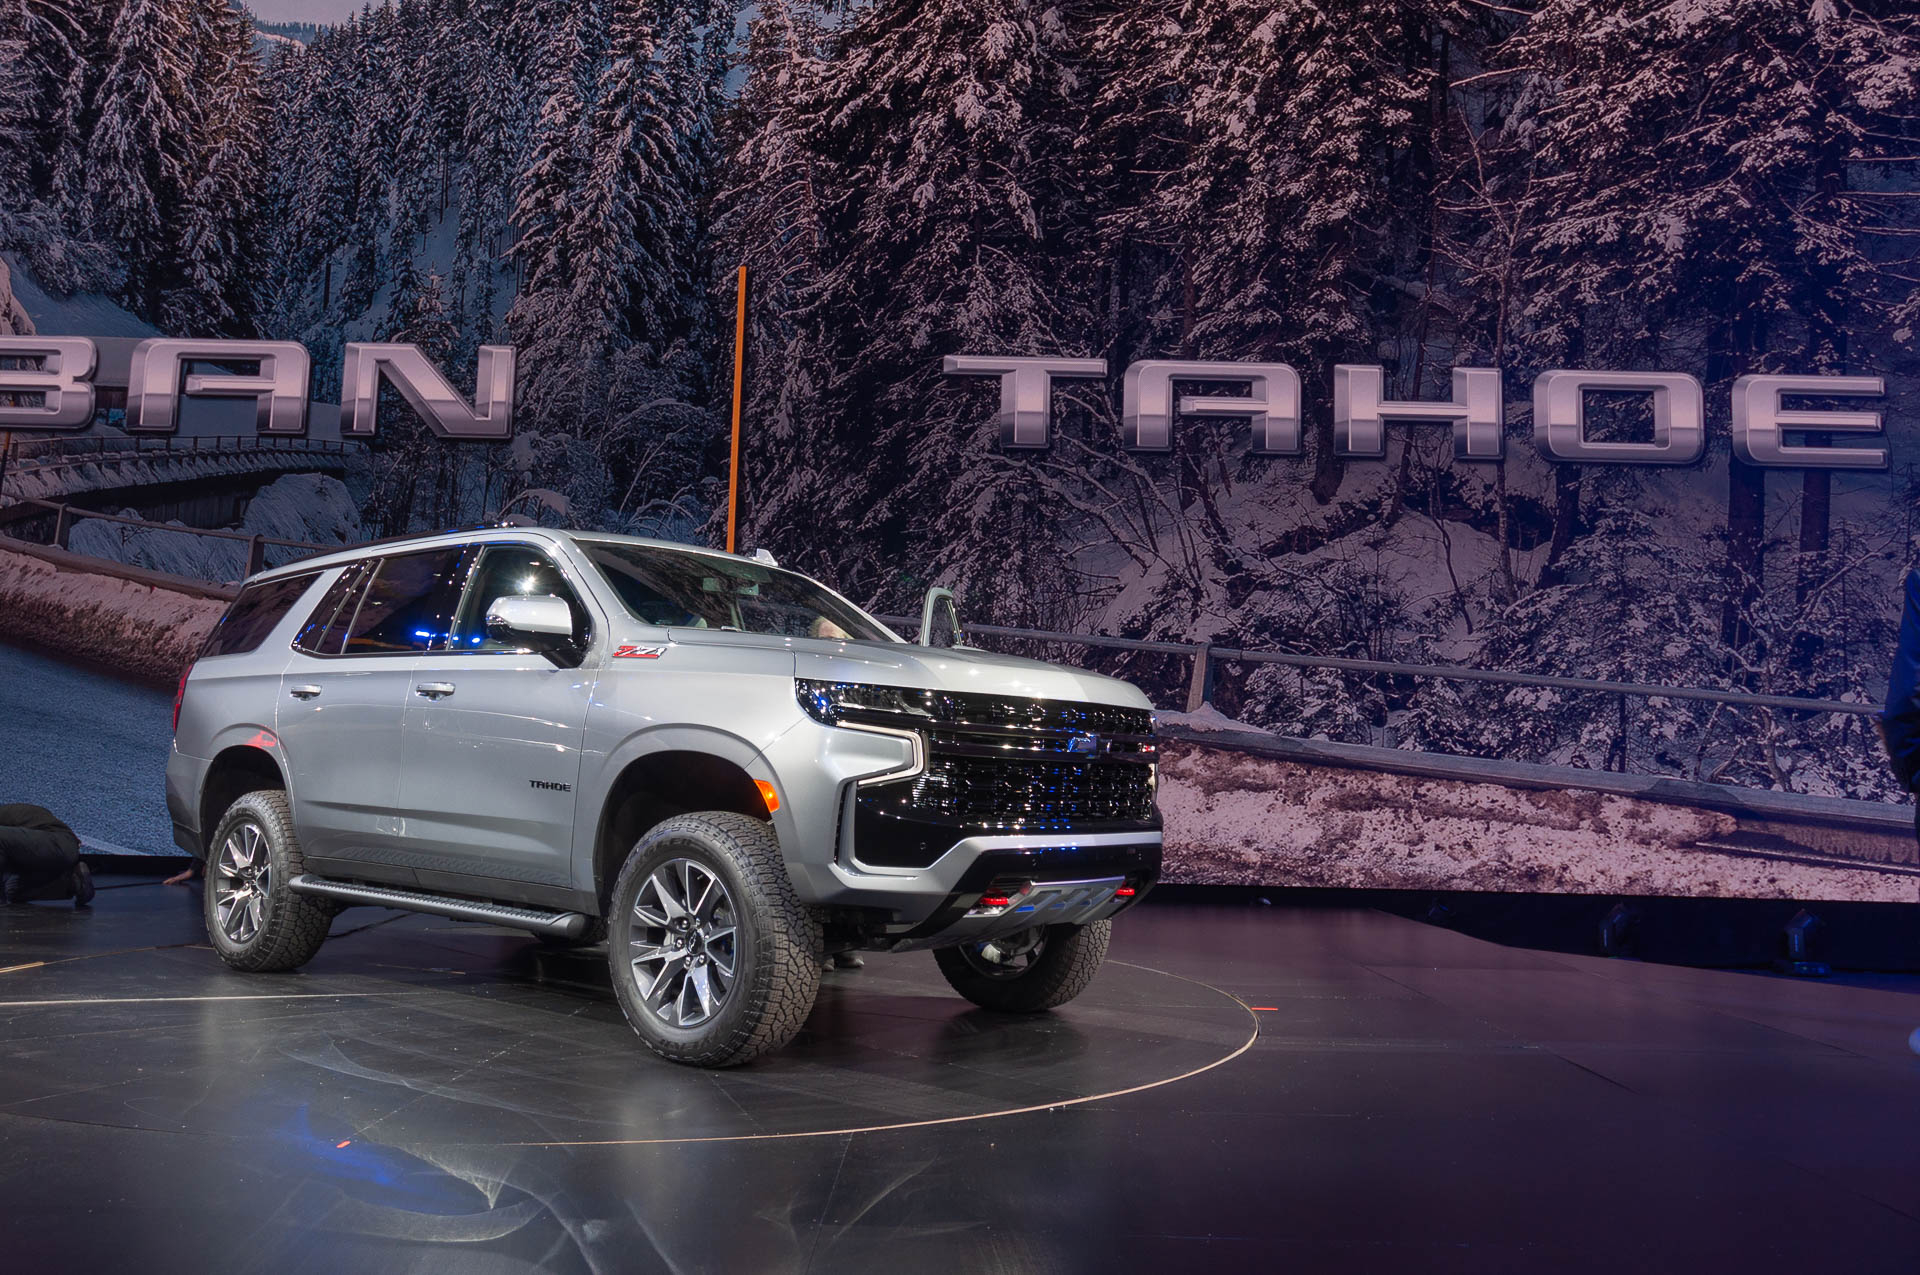 2021 Chevrolet Tahoe And Suburban Double Down On Tech, Space 2022 Chevy Tahoe Brochure, Base Model, Cargo Space